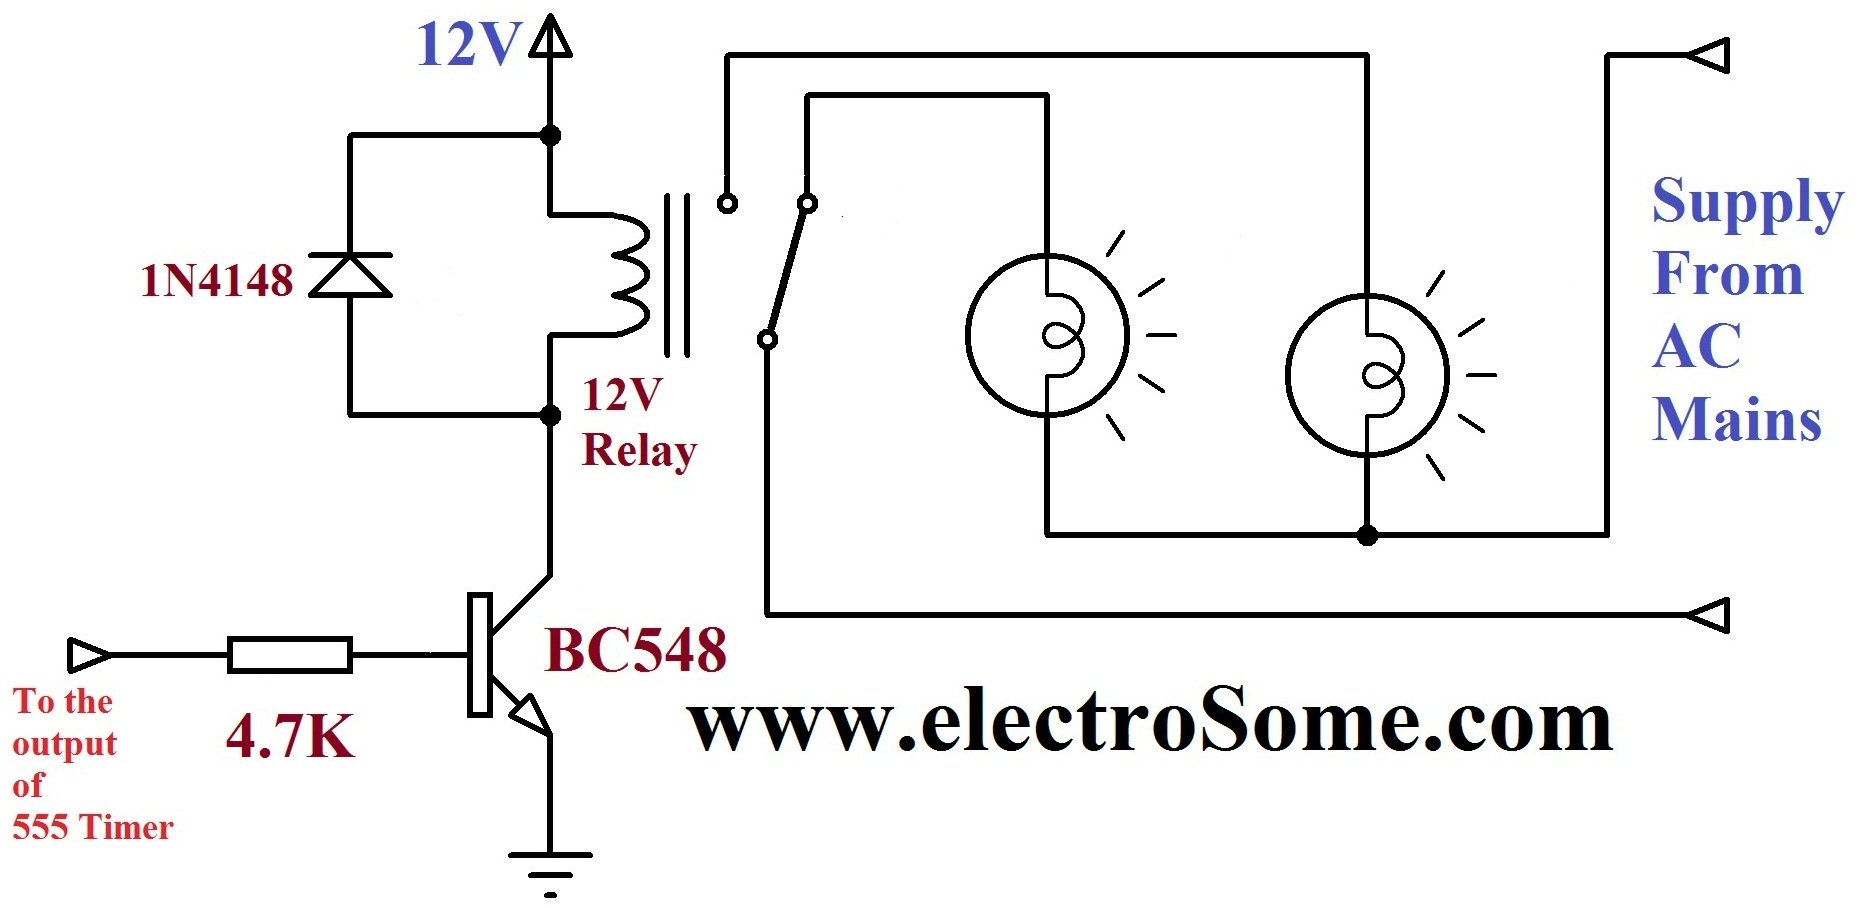 Dancing Light Using 555 Timer Touch Sensor Based On Monostable Mode Of Relay